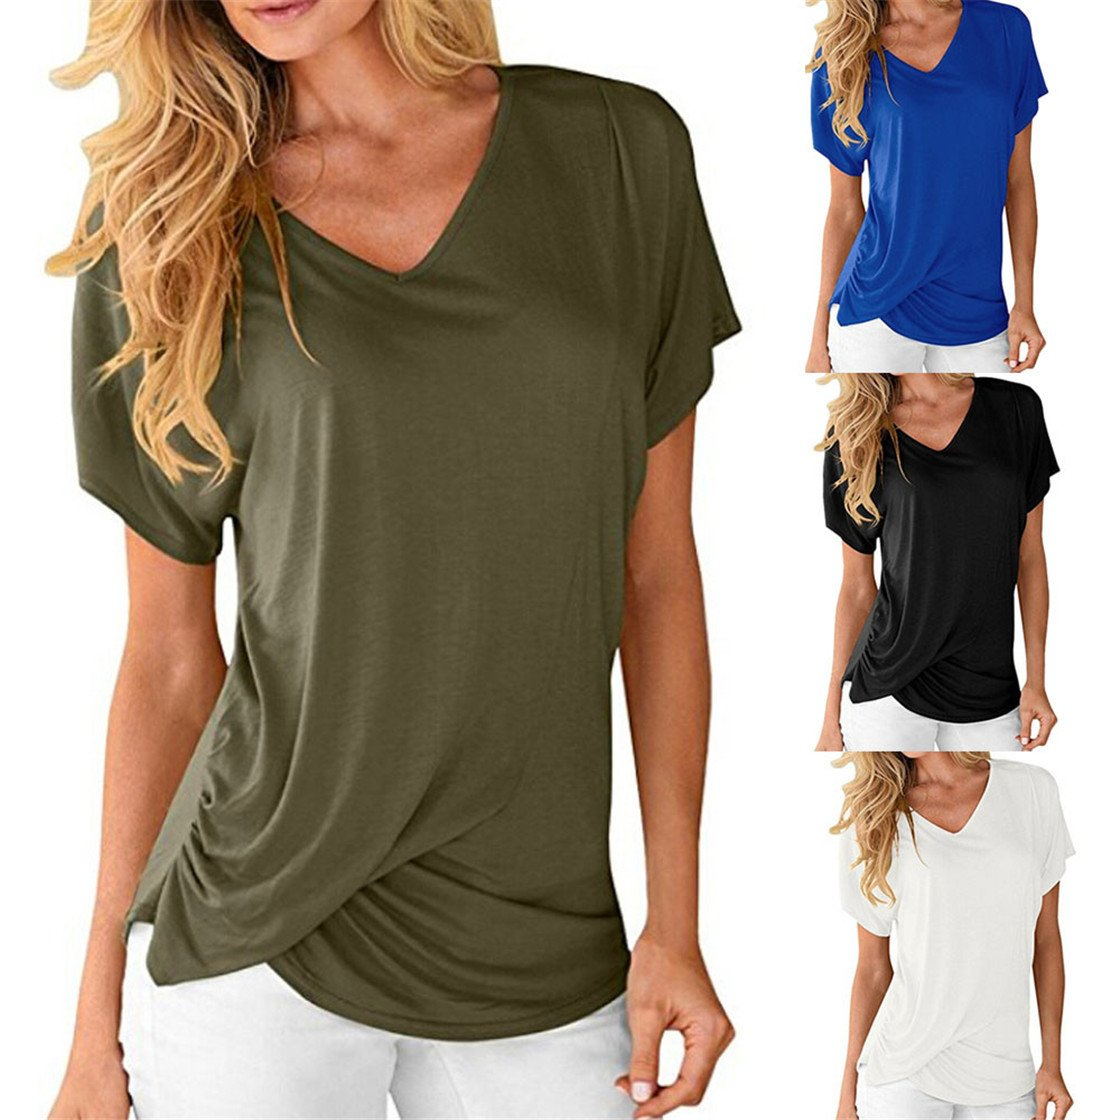 Mose Womens Tops Solid Color Short Sleeve Tops V Neck Draped Plain